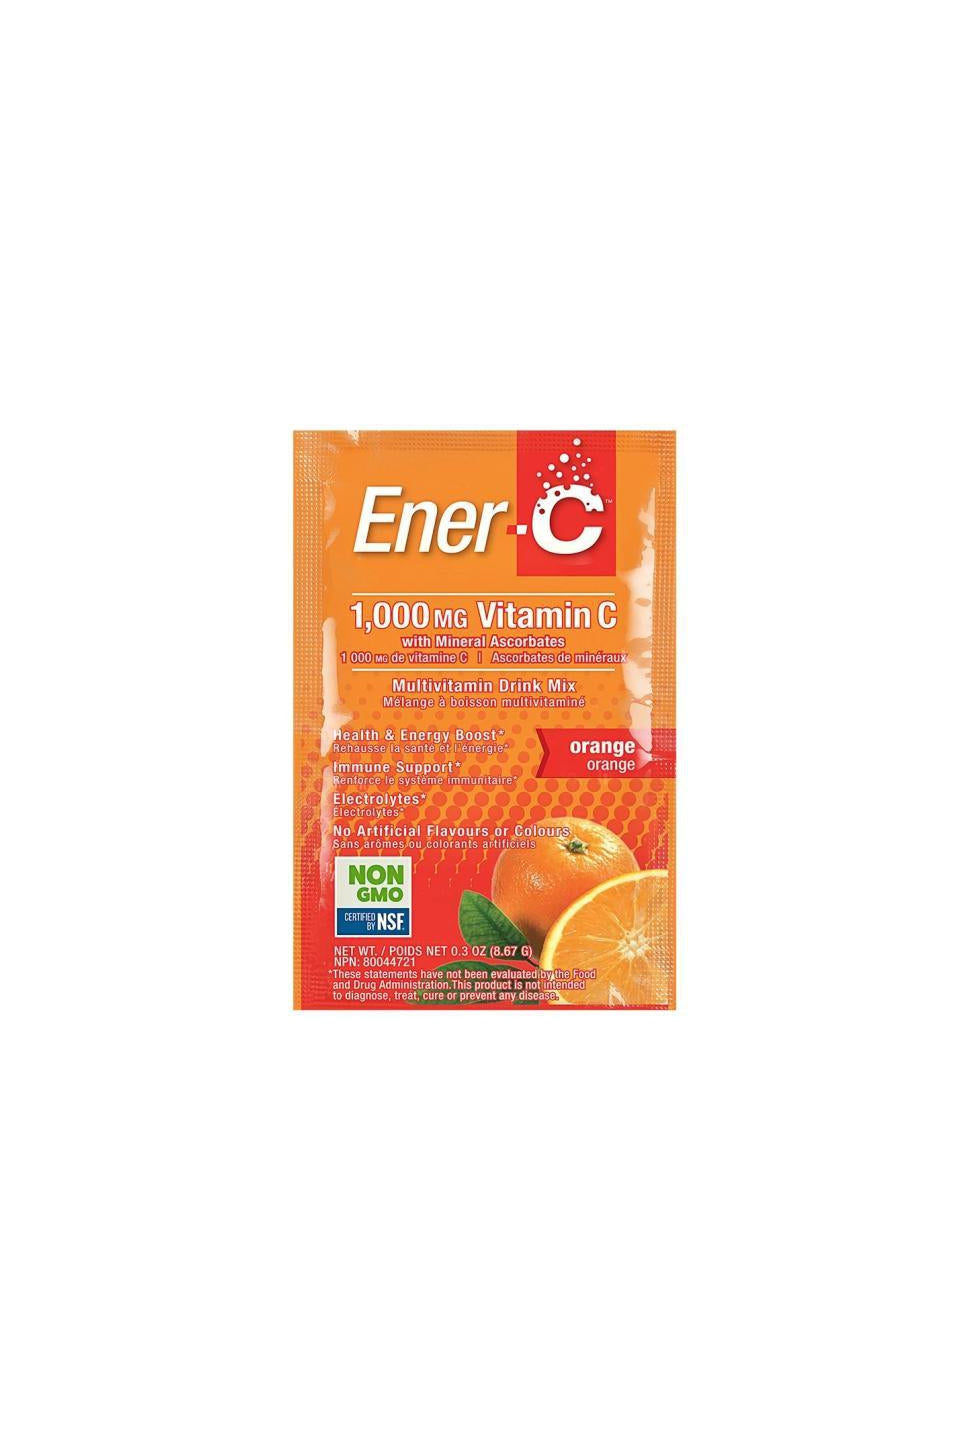 Ener-C Orange Multivitamin Drink Mix - 1,000mg Vitamin C 1 Sachet